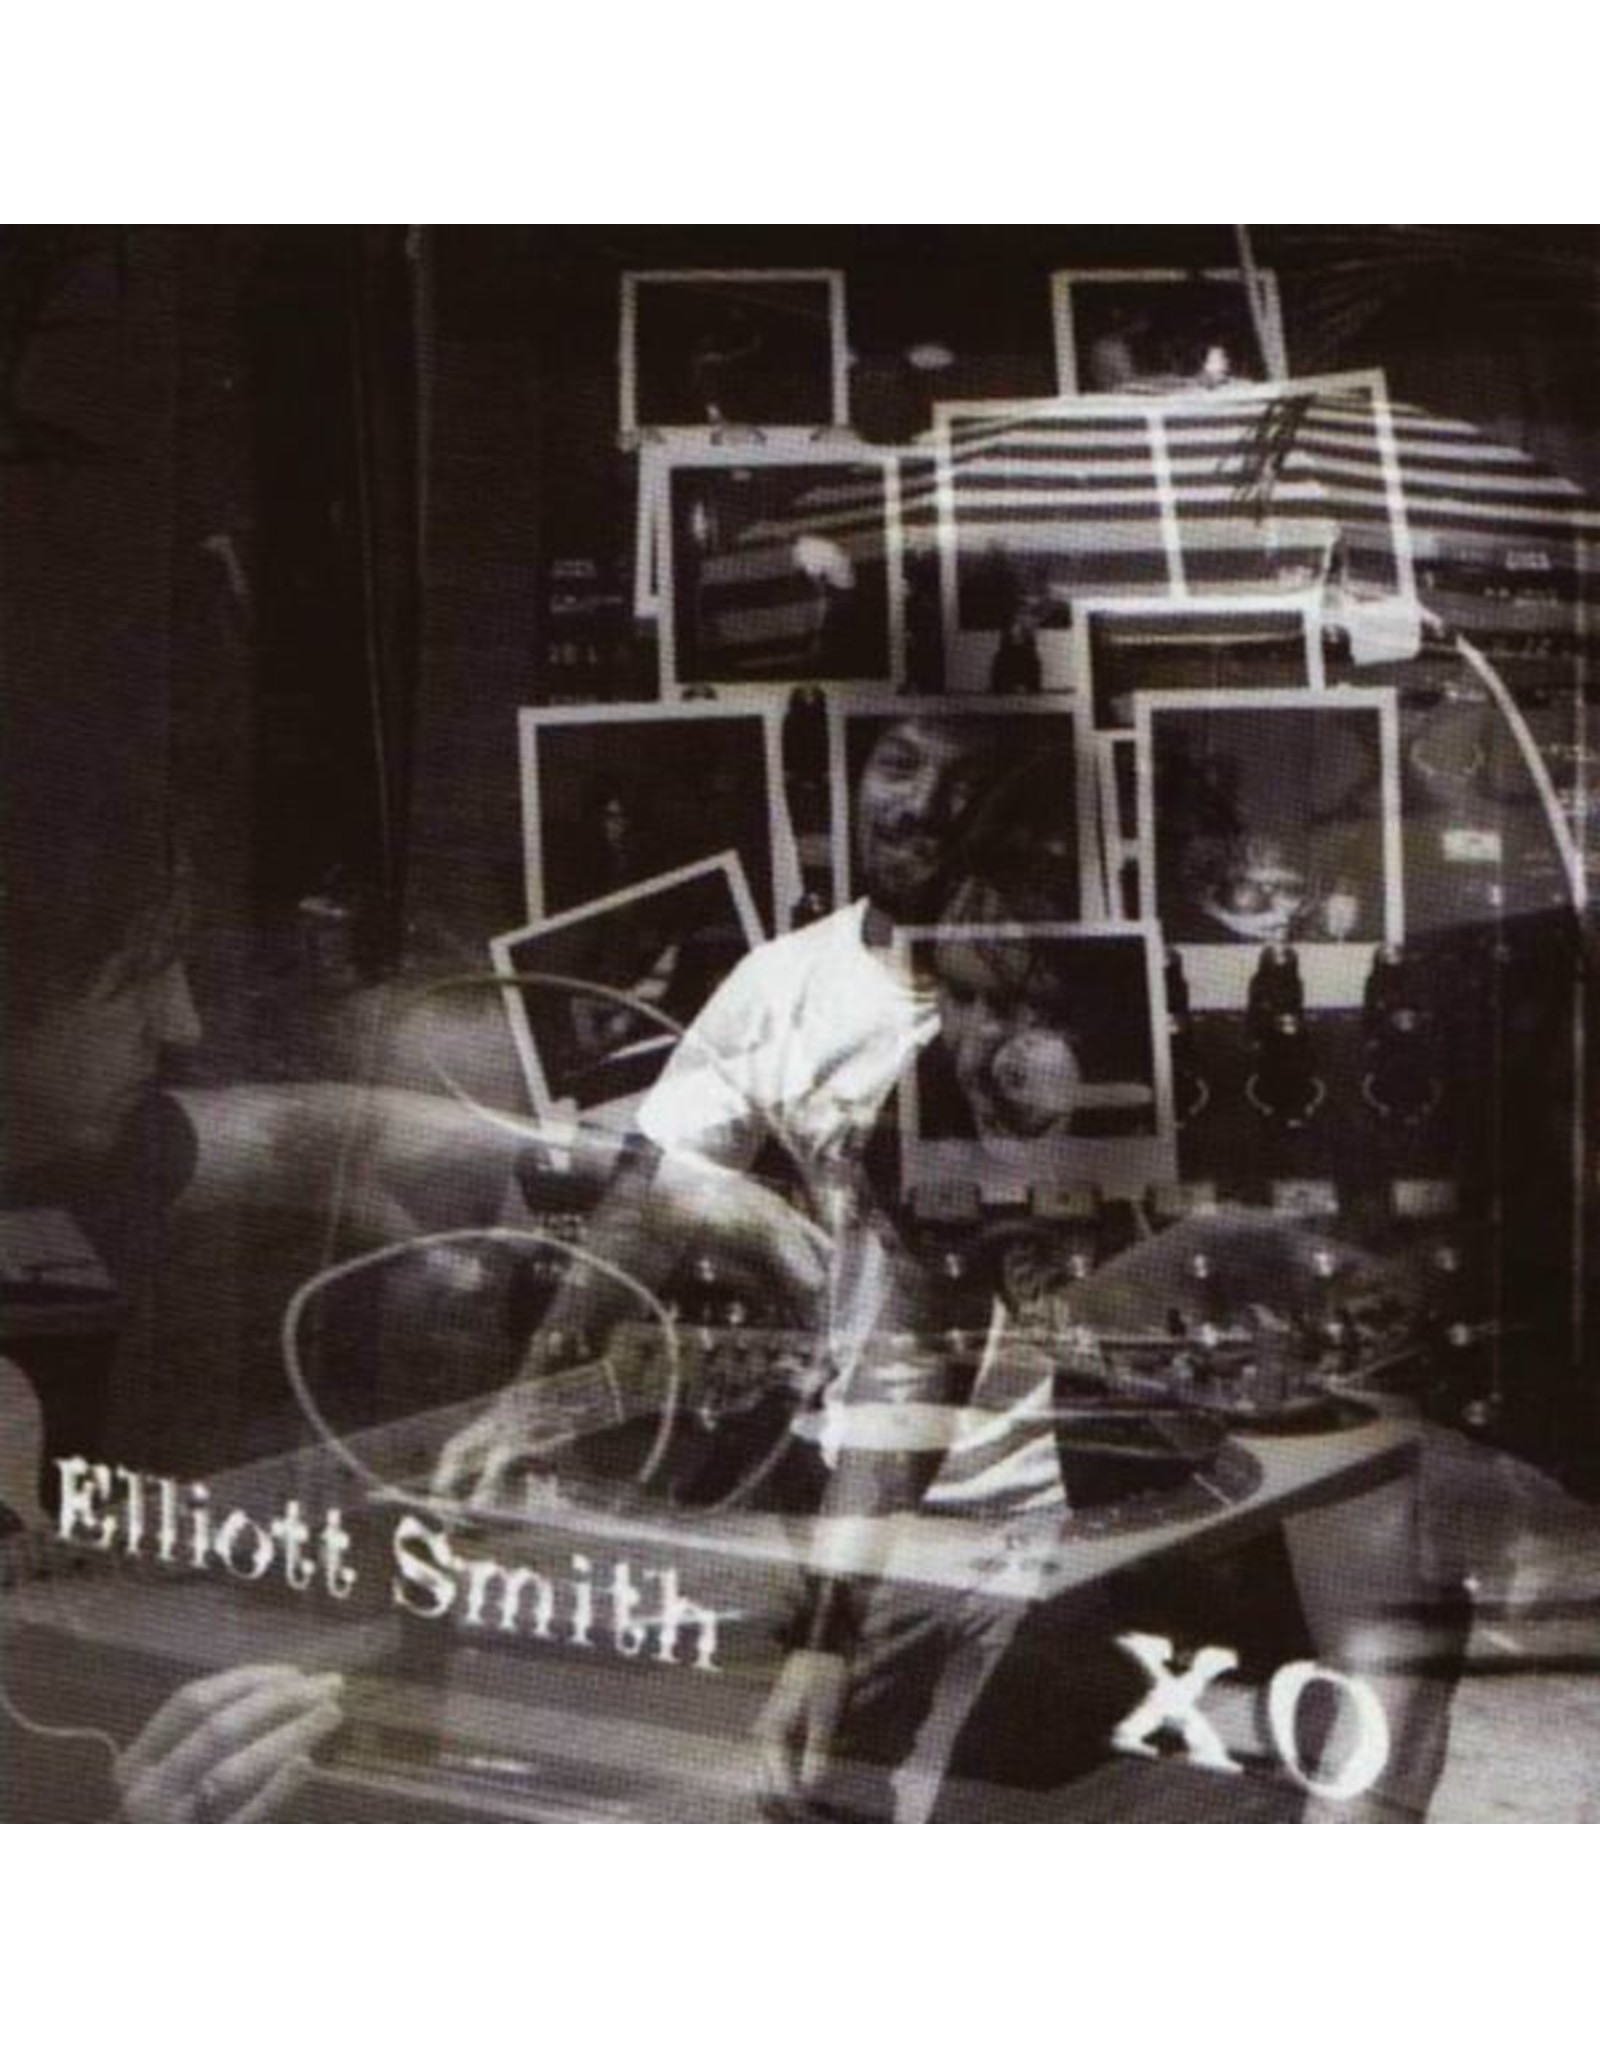 New Vinyl Elliott Smith - XO LP